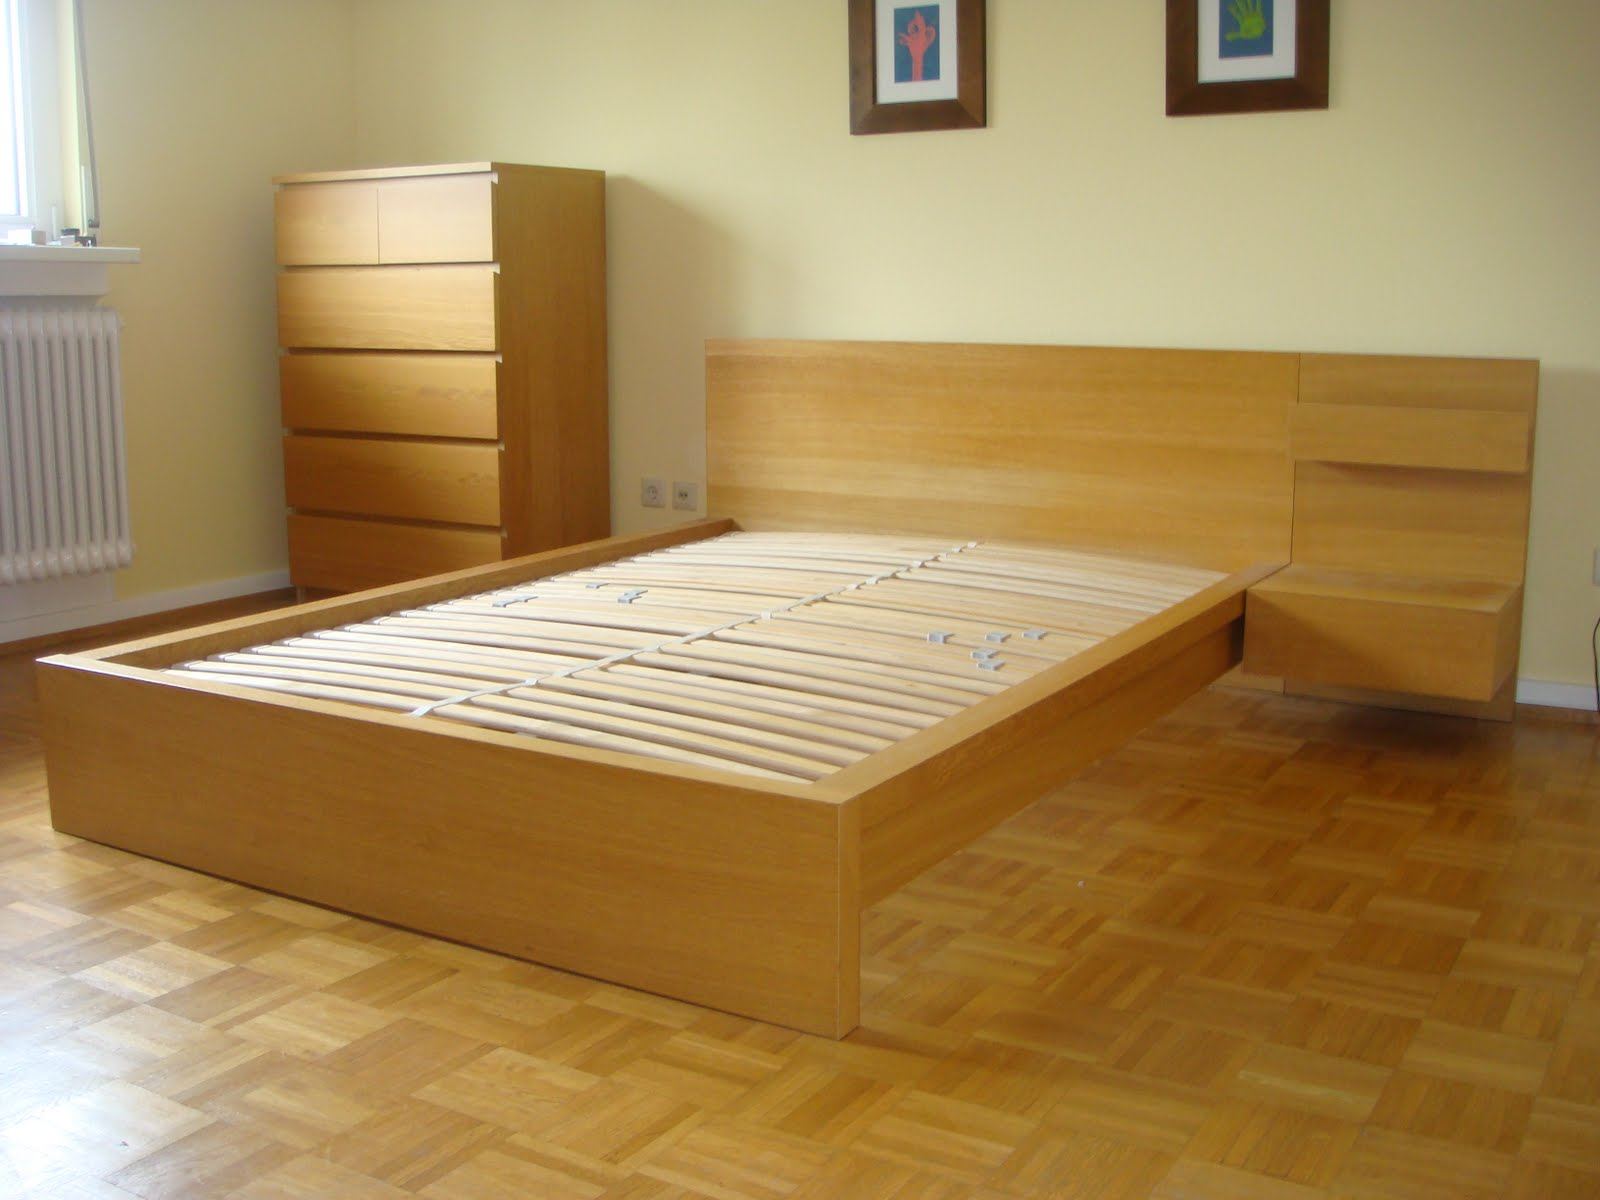 Ikea Malm Bett Kopfteil Too Good To Chuck: Ikea Bed Malm